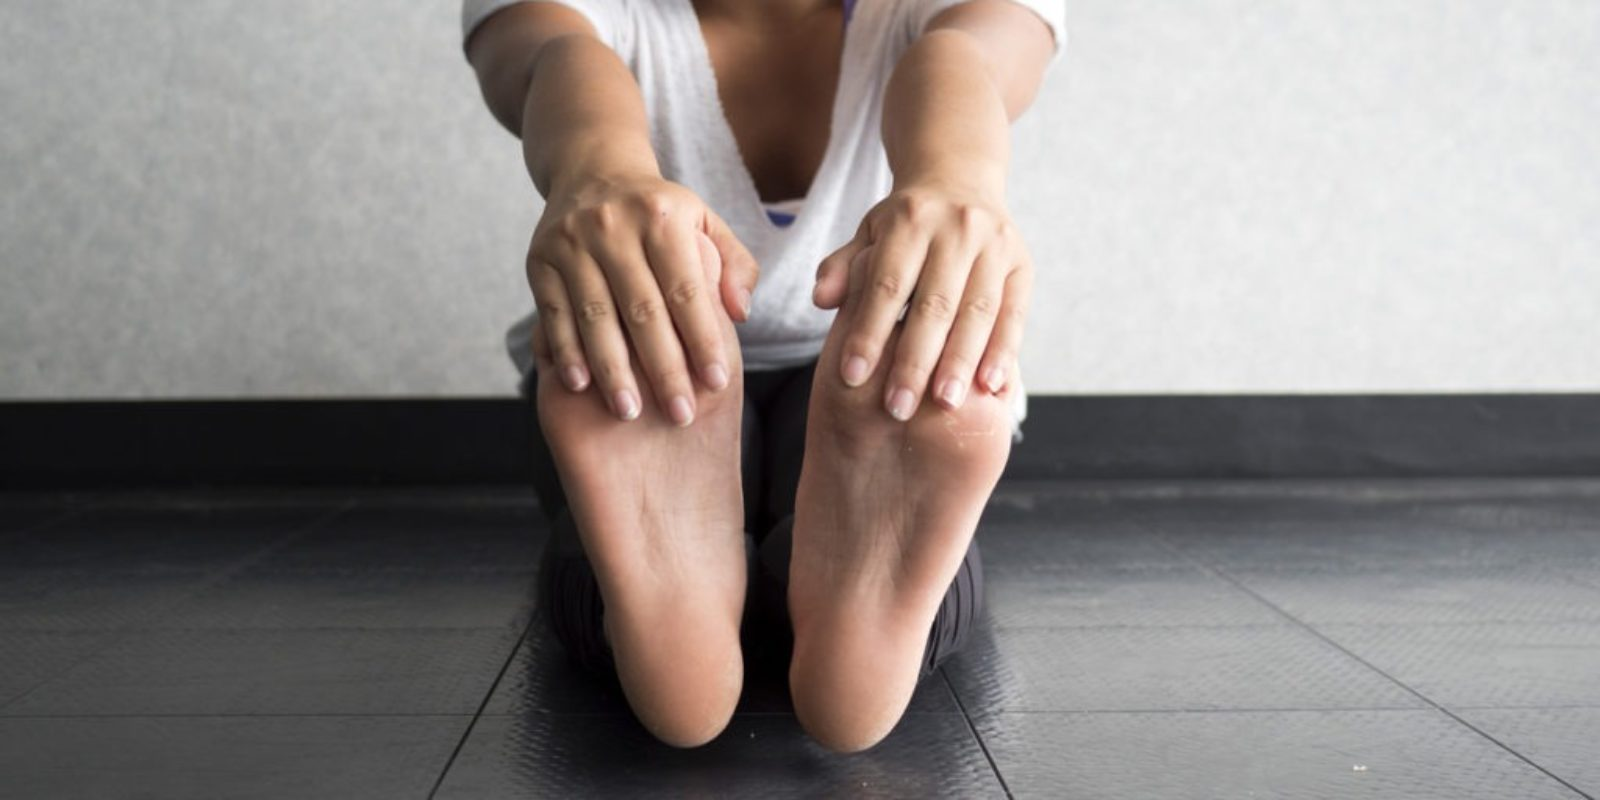 young woman sitting of floor with legs extended while holding toes to stretch hamstrings